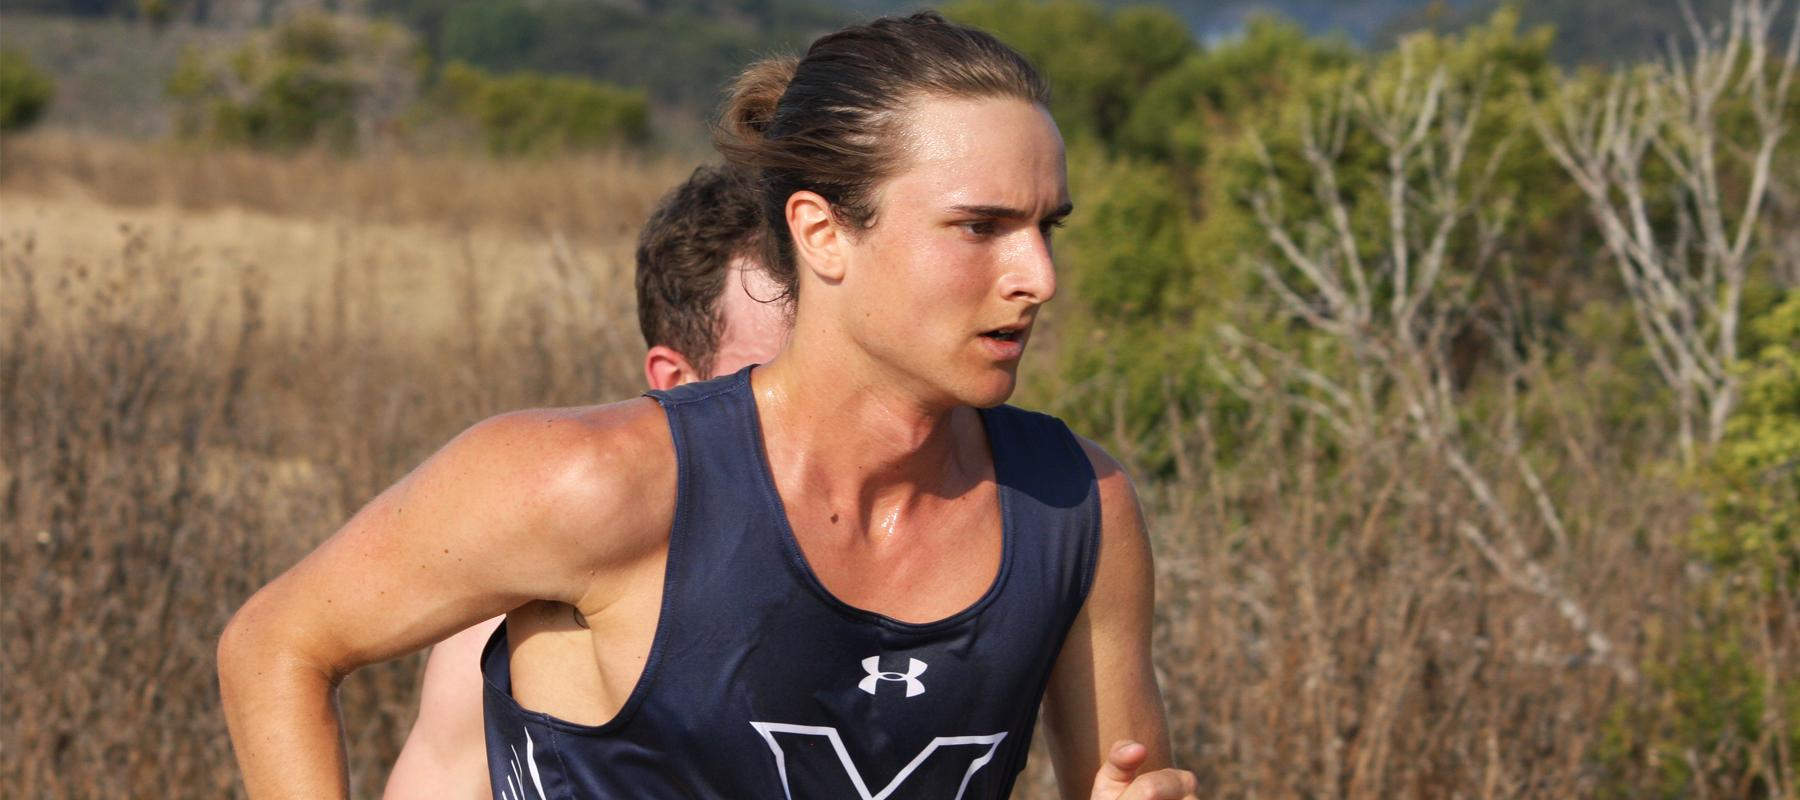 Boutin places in top-15 during first Cross Country Invite of season